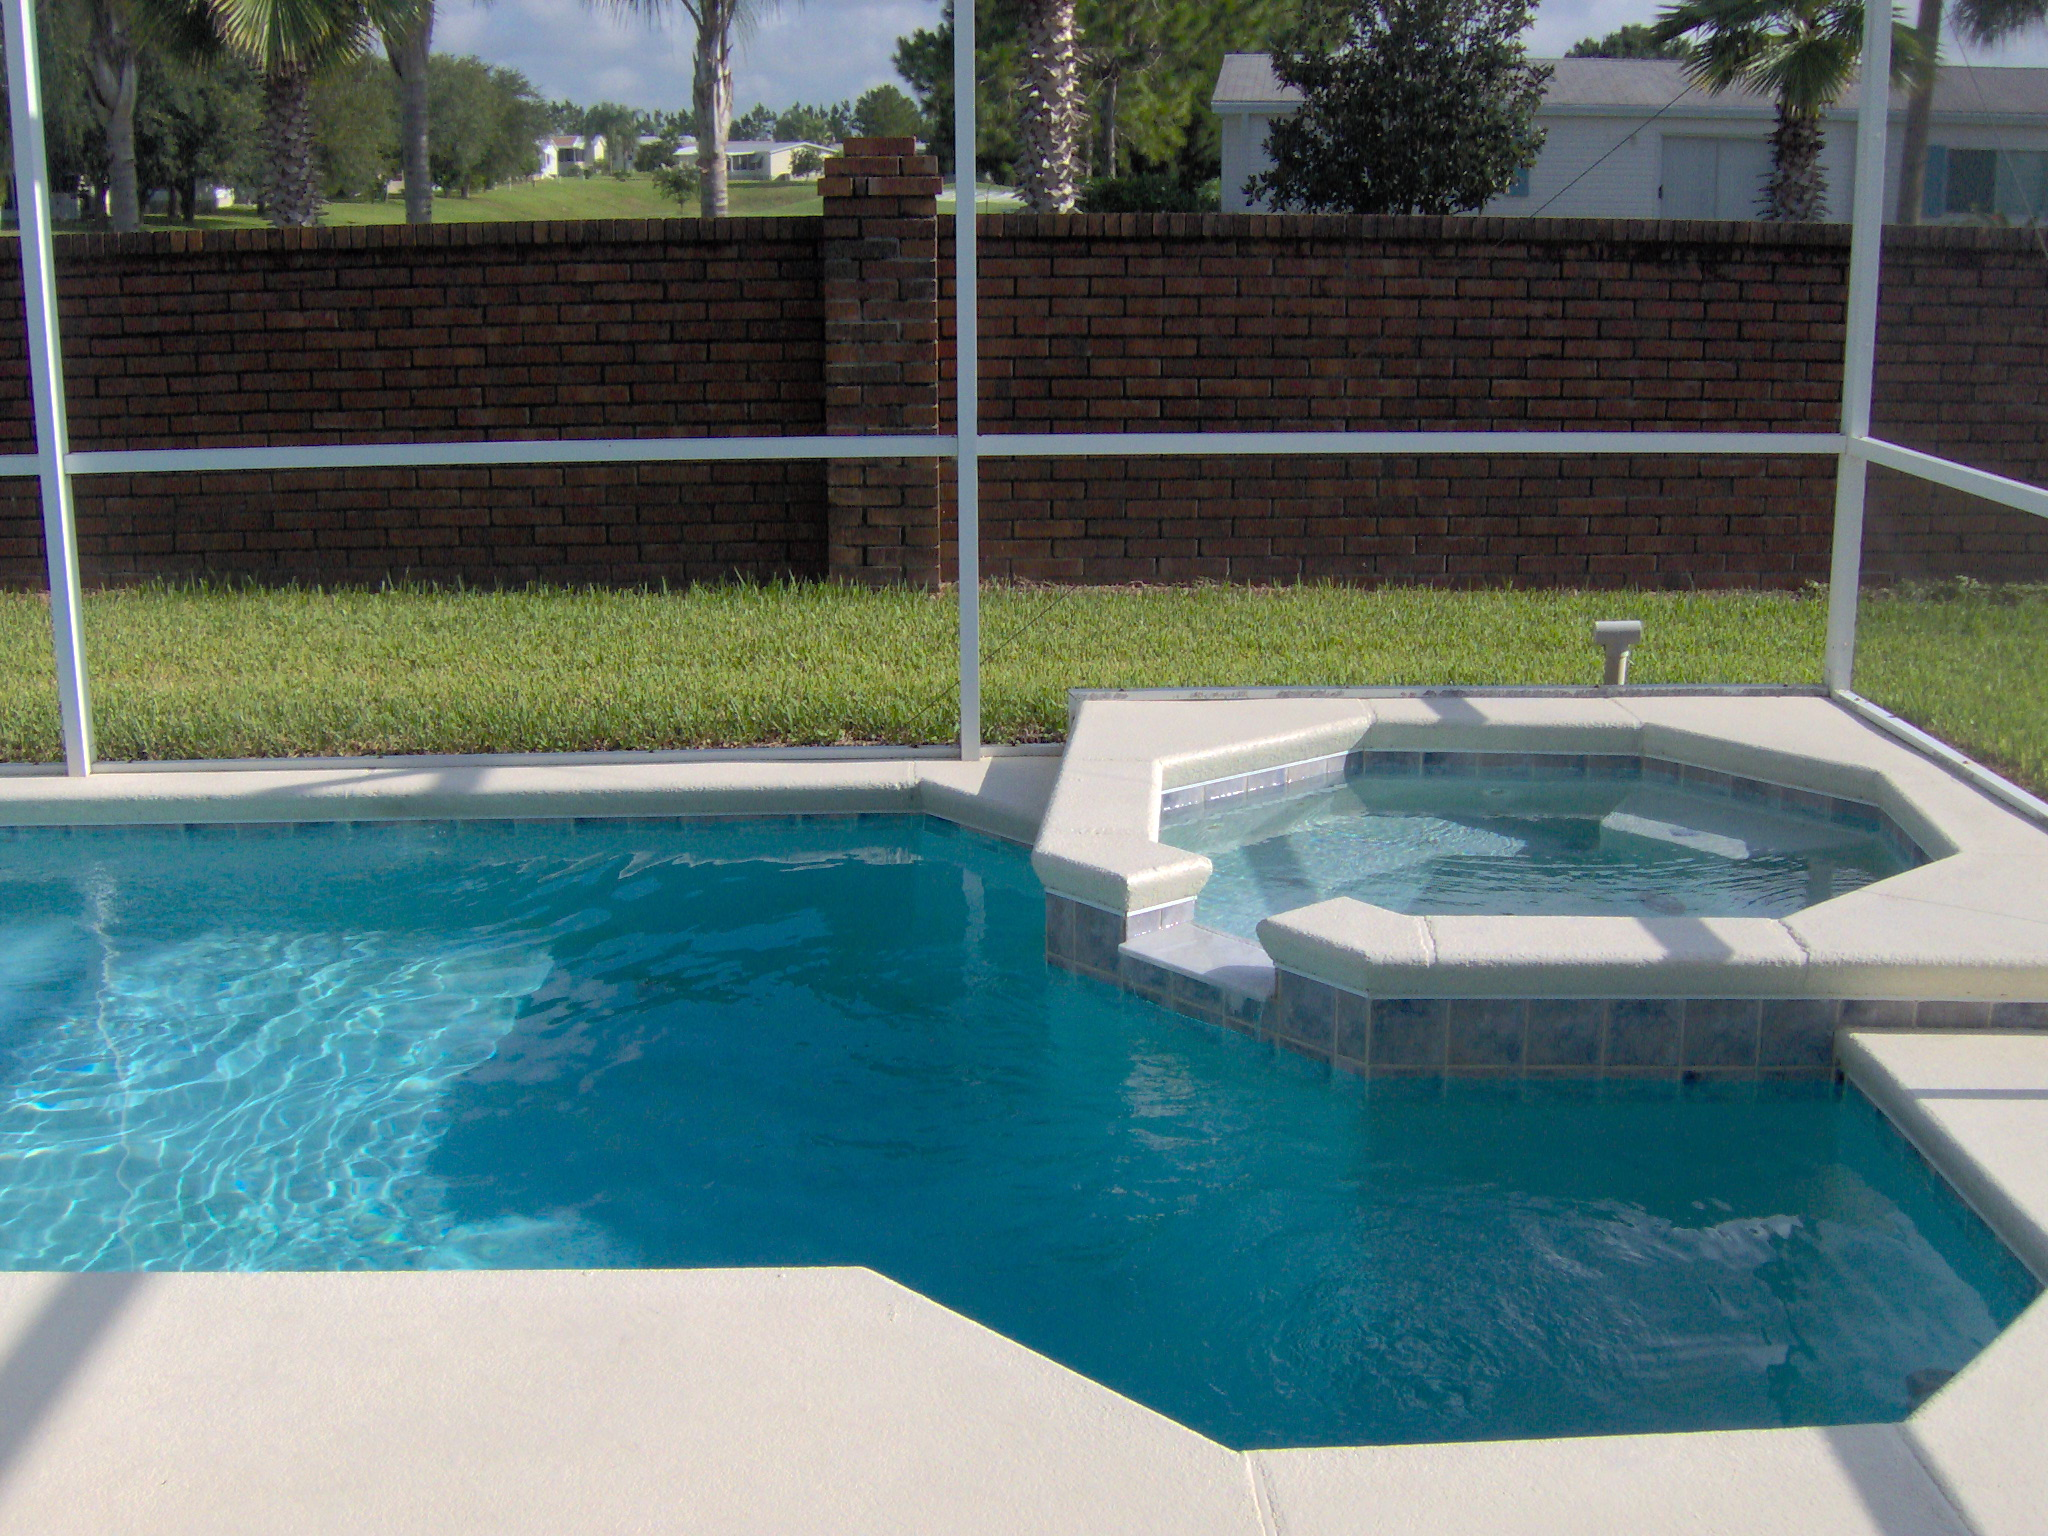 File:Small pool with small Jacuzzi.JPG - Wikimedia Commons